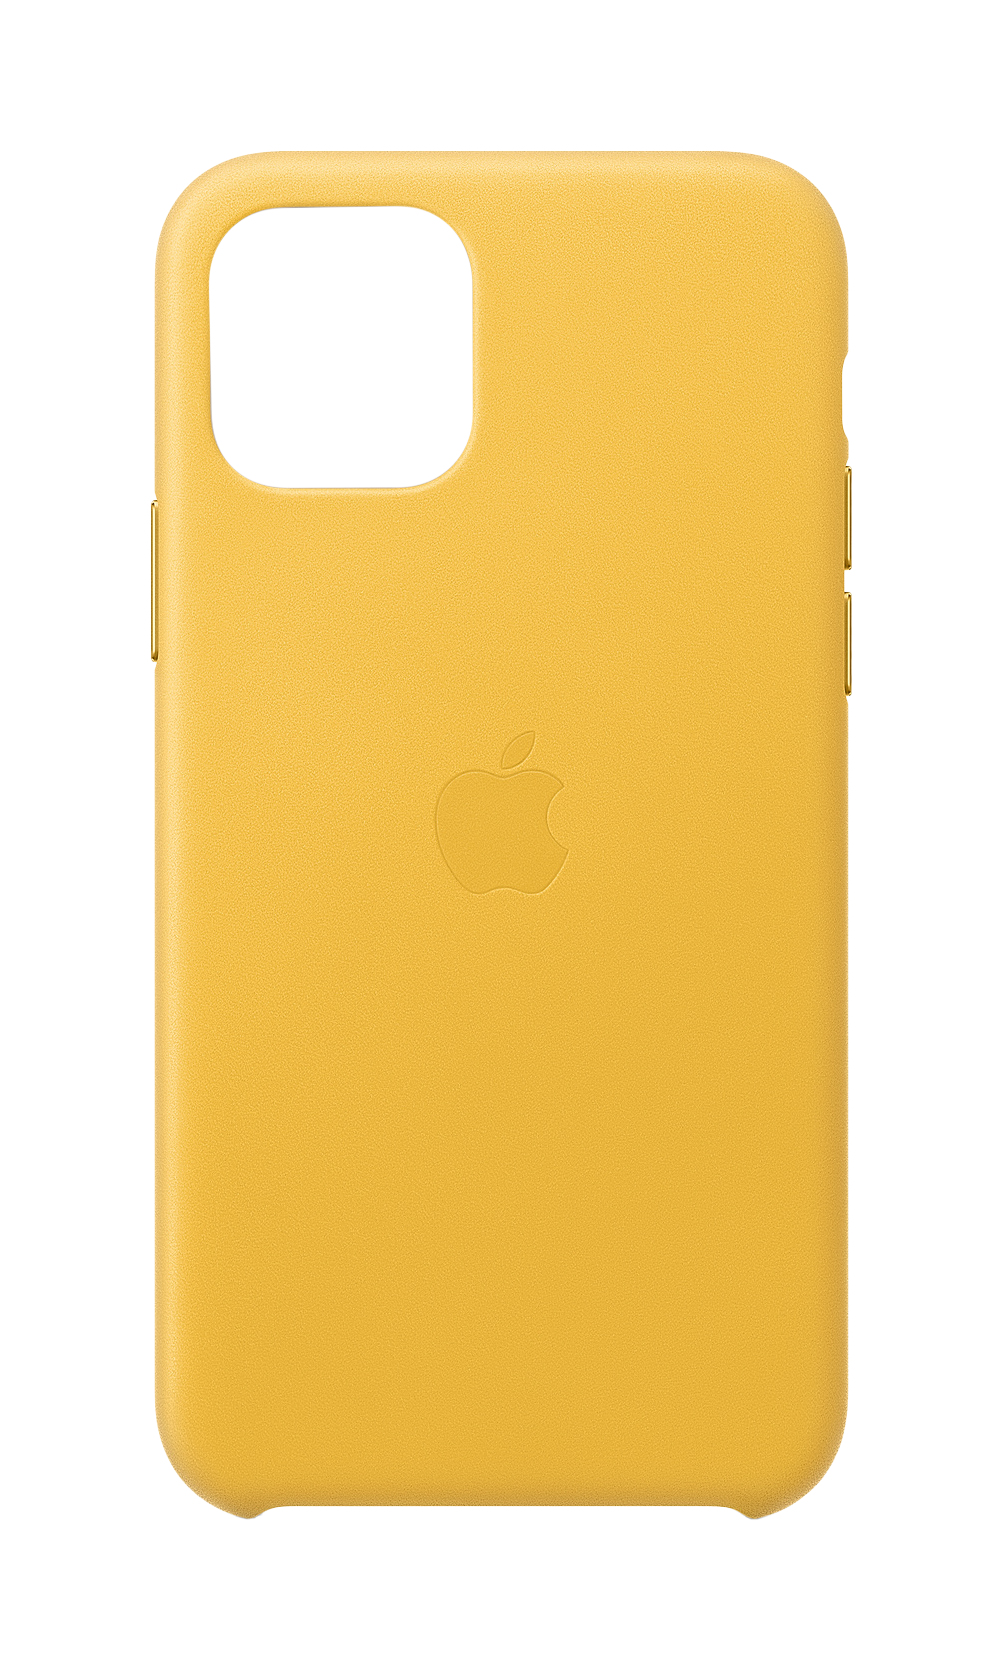 "Apple MWYA2ZM/A mobile phone case 14.7 cm (5.8"") Cover Yellow"